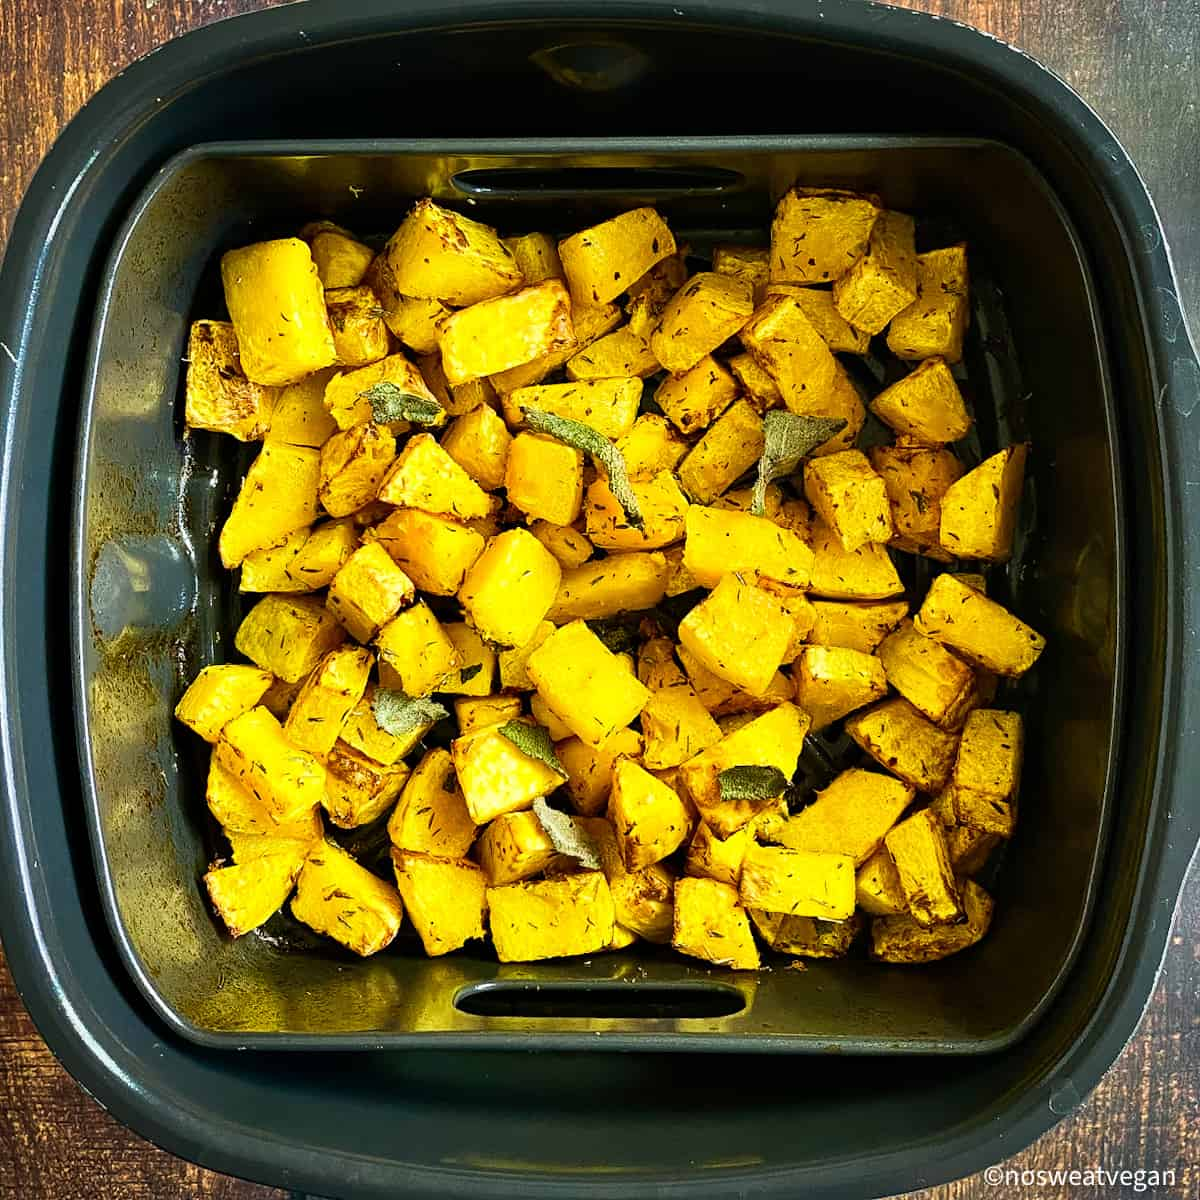 Butternut squash cooked in air fryer.